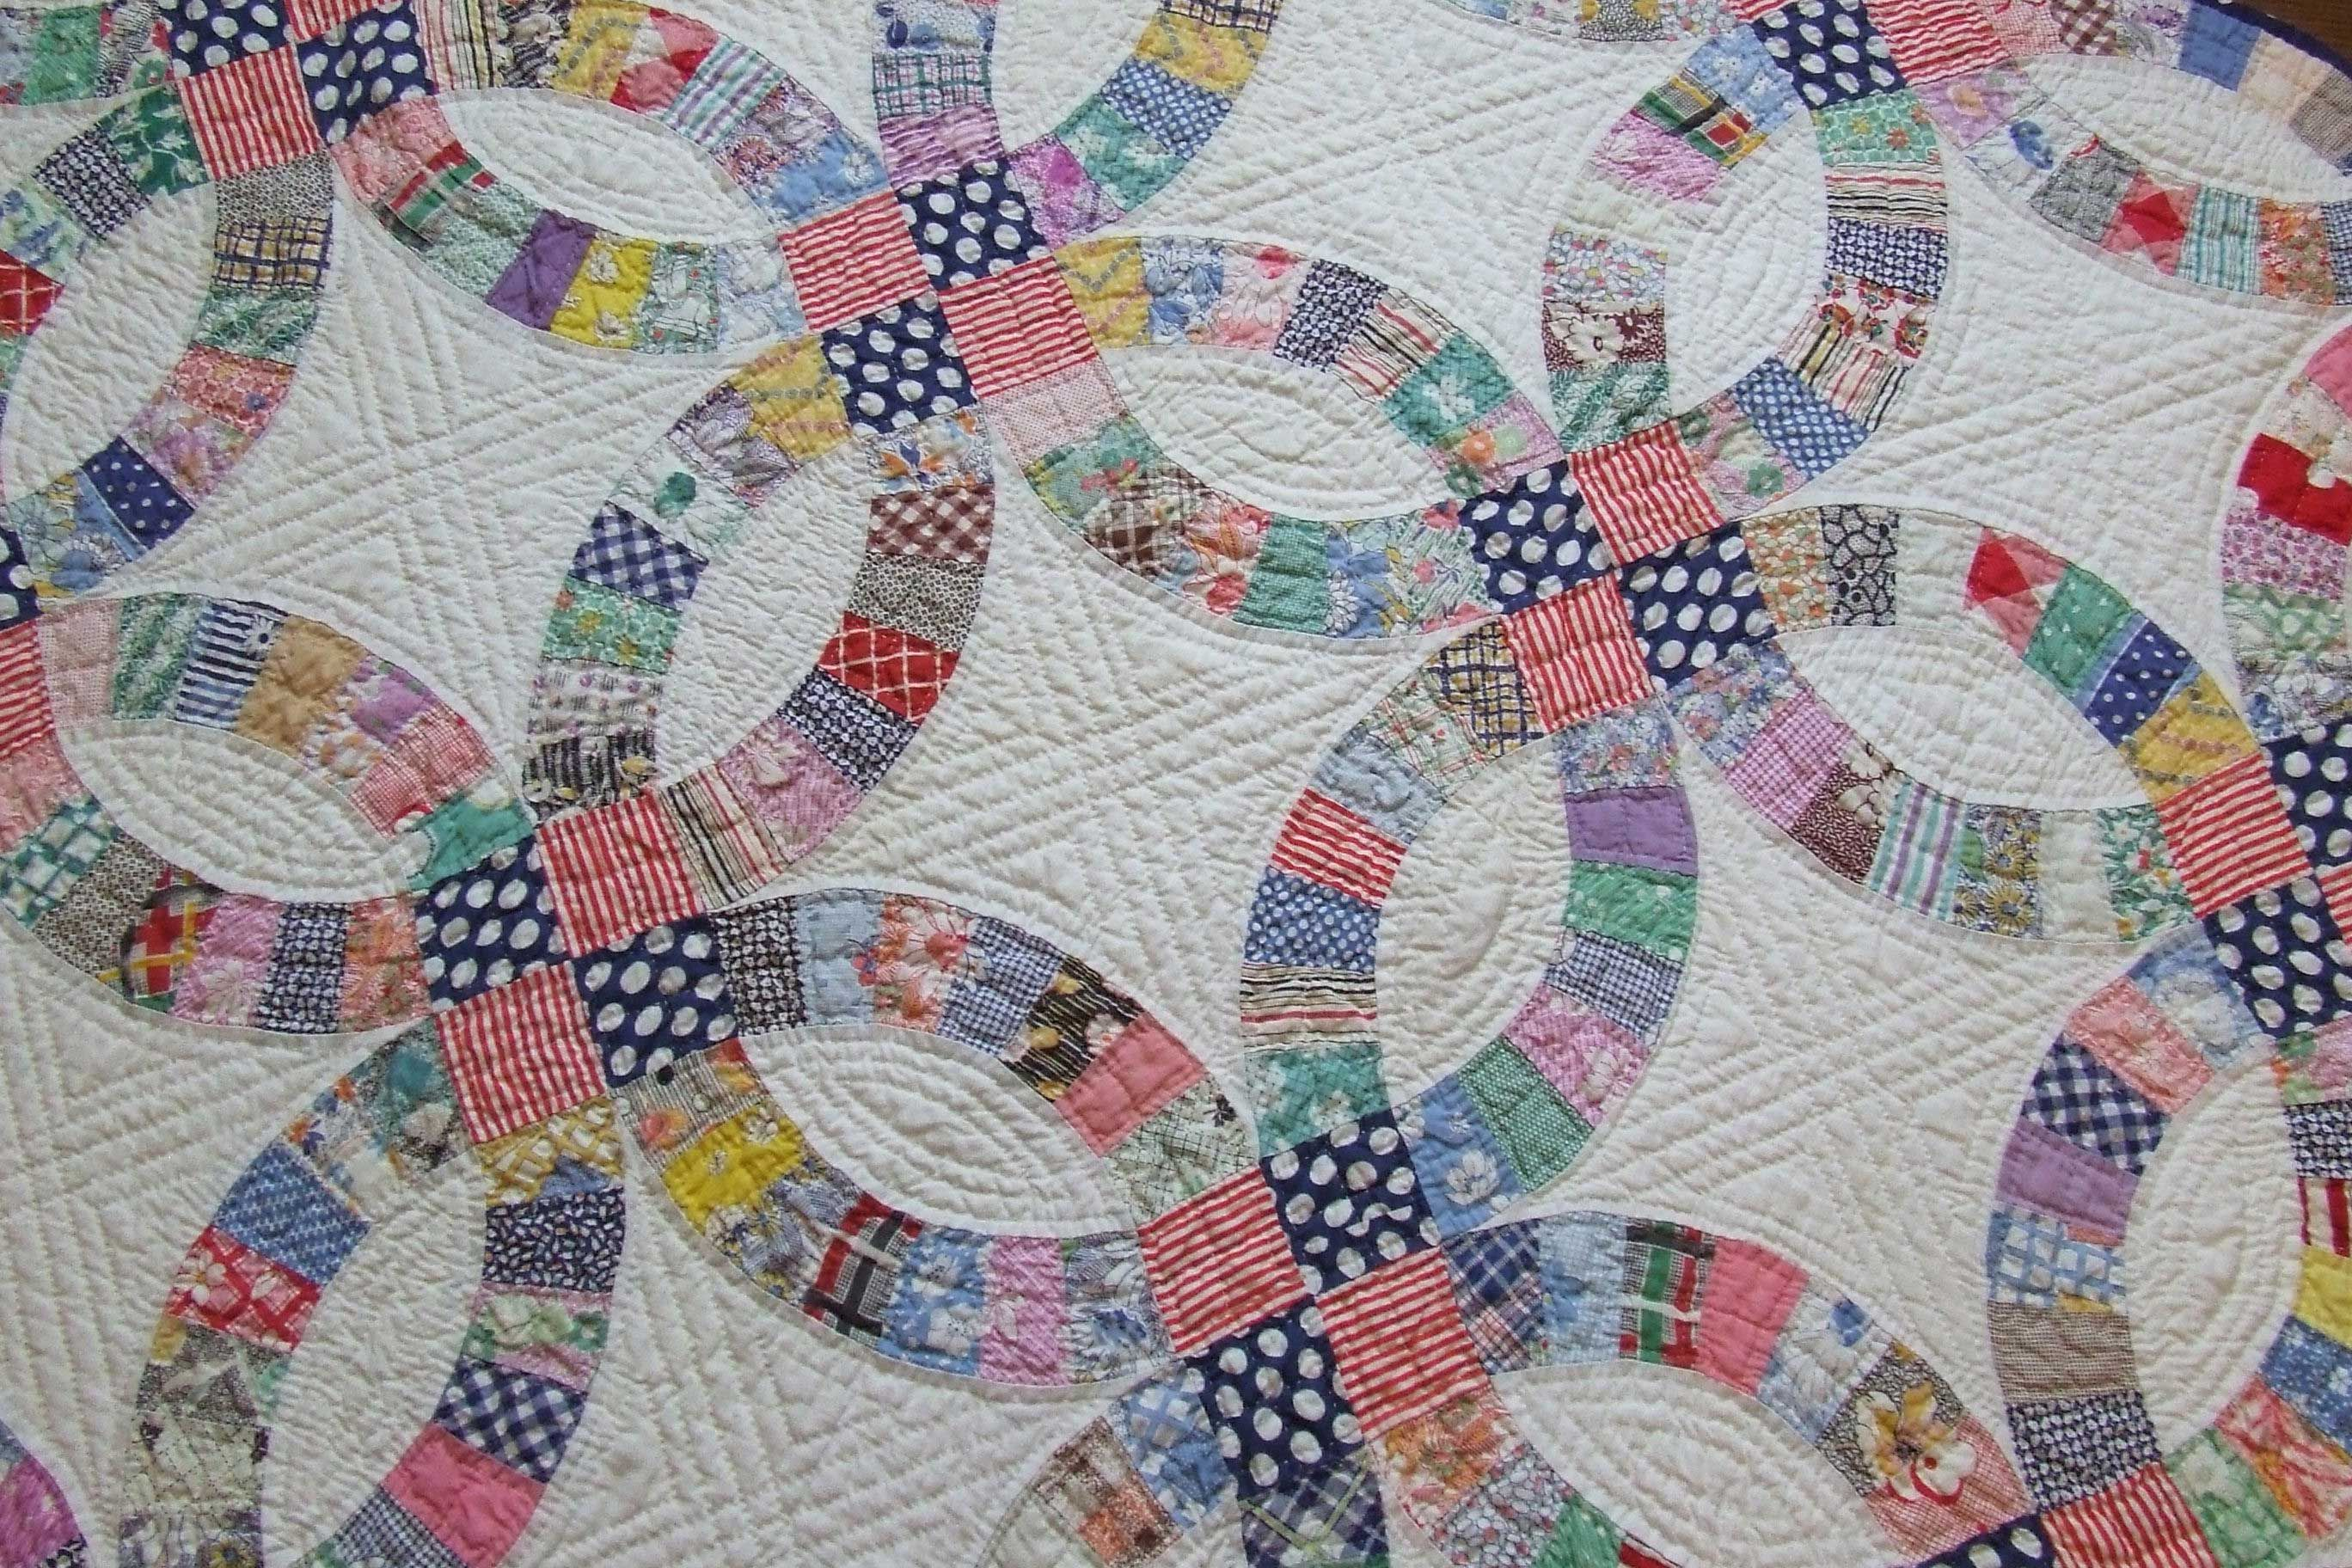 Wedding ring quilt pattern ideas 033 From 41 Beautiful